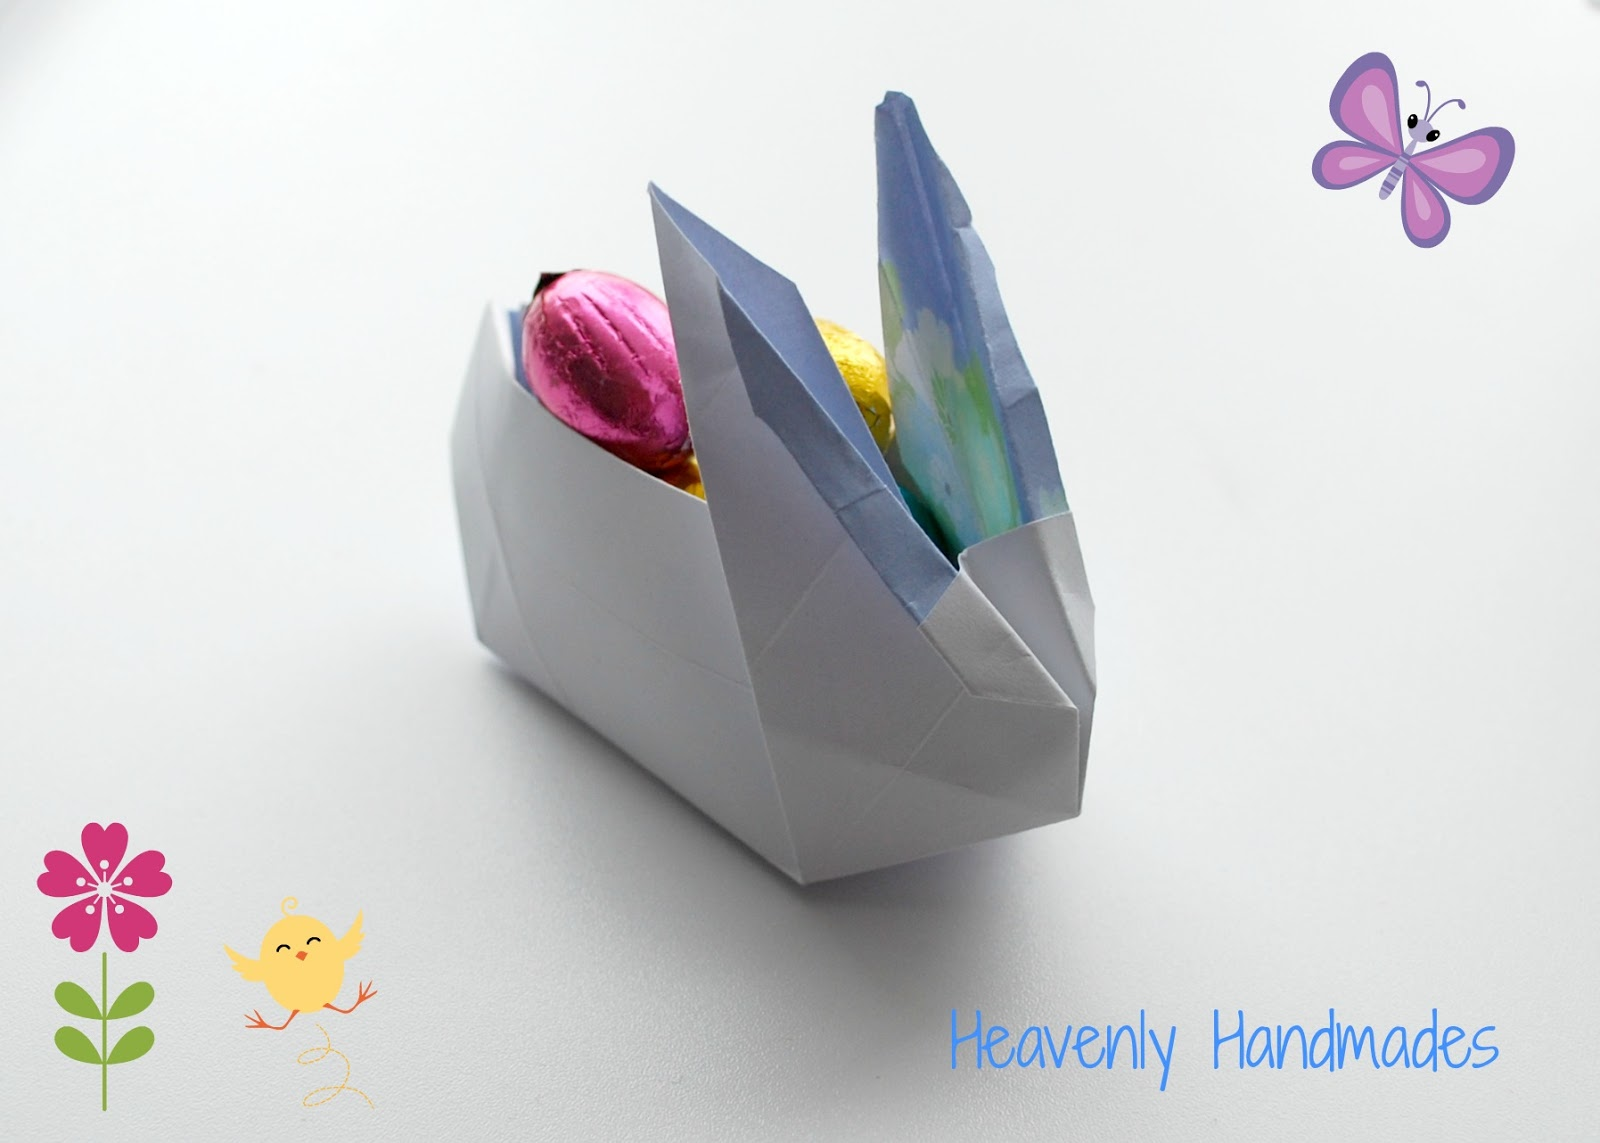 Diy Origami Bunny Heavenly Handmades